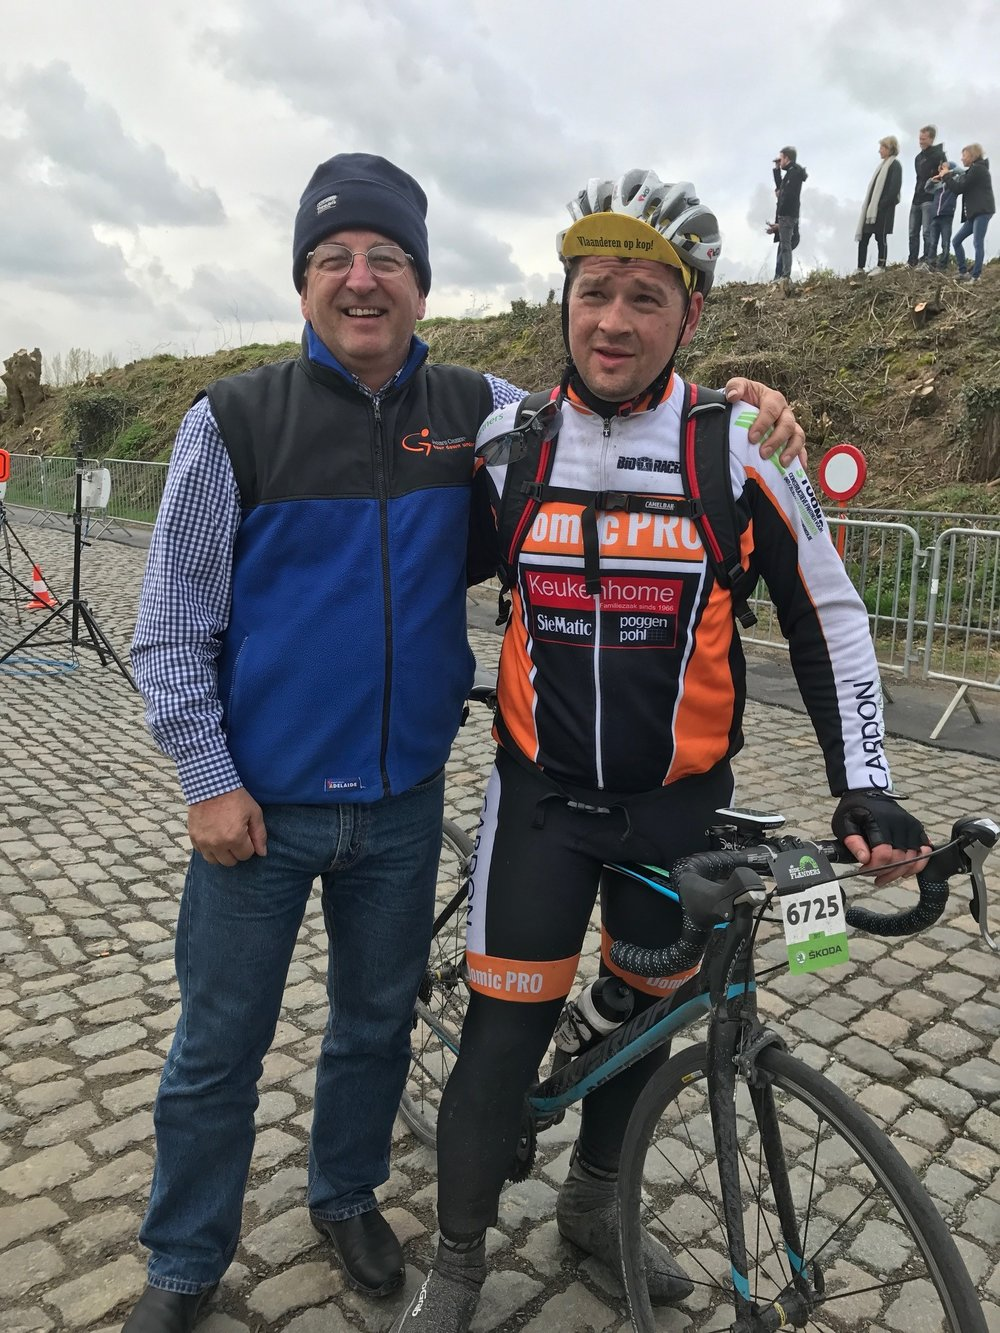 Ronde Van Vlaanderen Cyclosportive 17 - Mike O'Reilly with Maarten Verhulst at the top of the Eikenberg